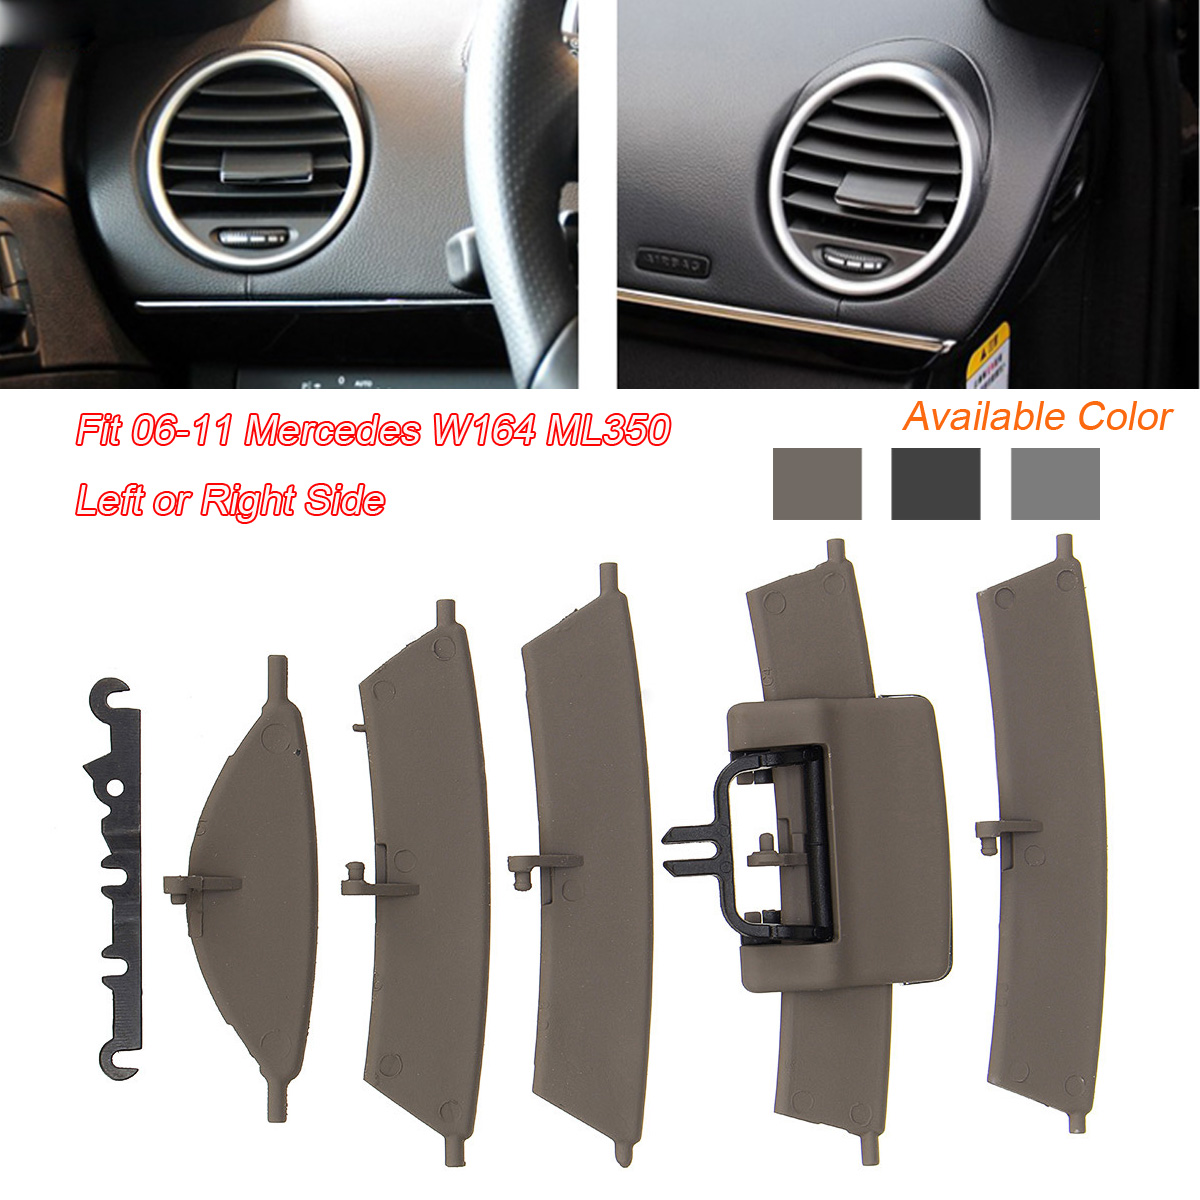 High quality Left/Right Side Plastic Car Front AC A/C Heater Air Vent Grill Fit for Mercedes W164 ML350 2006-2011 цена